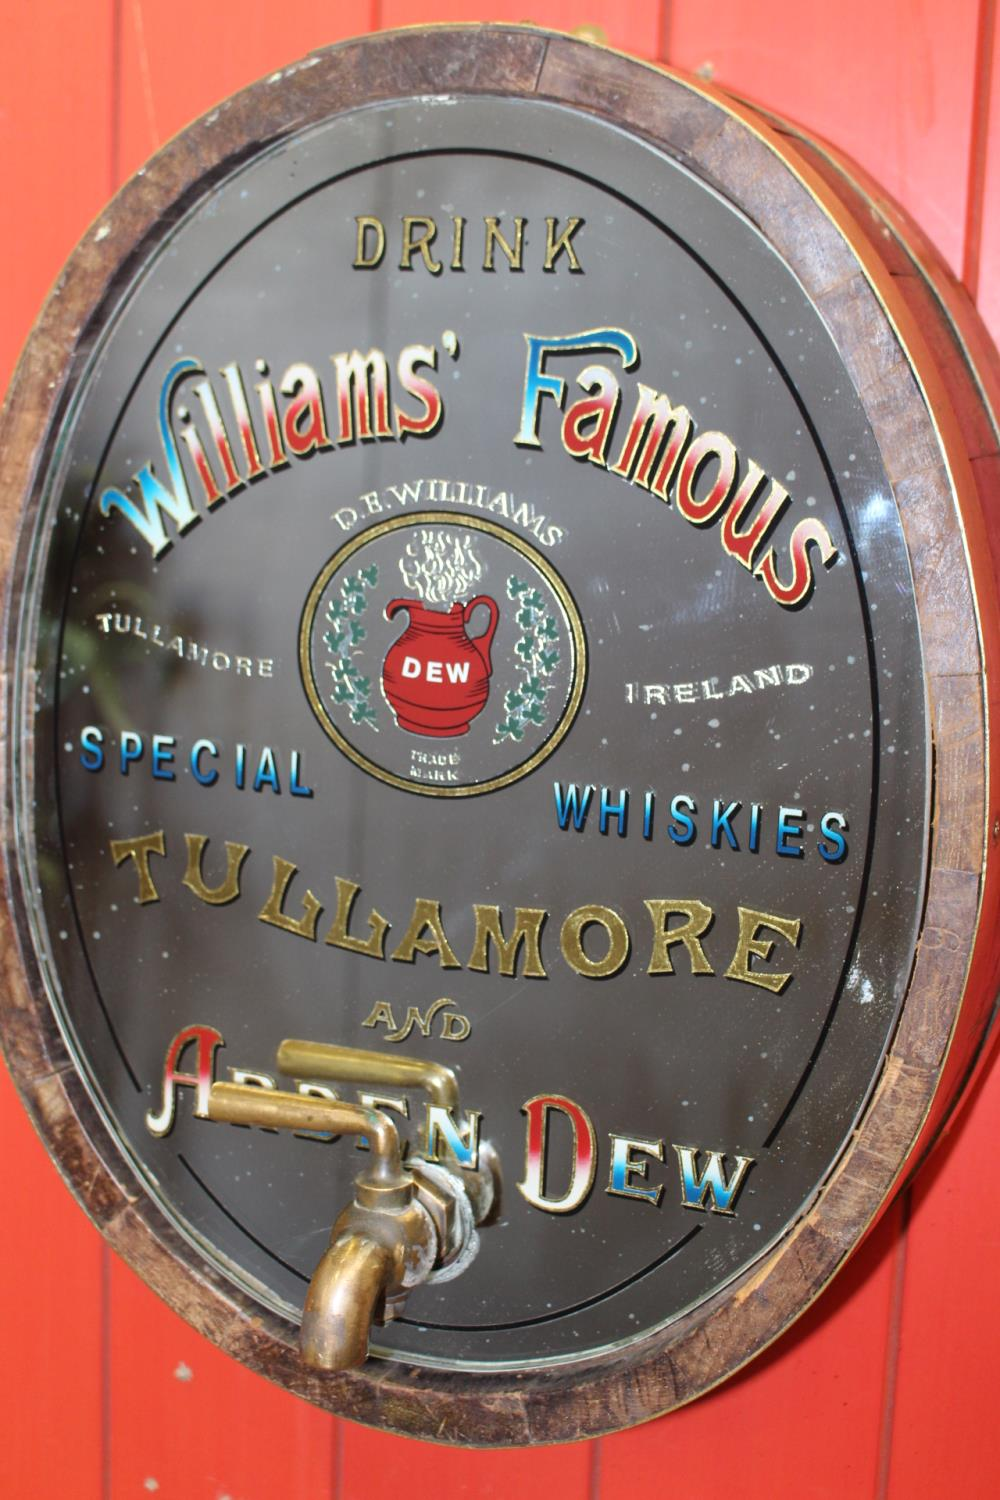 Williams Famous Tullamore and Arden Dew Whiskey oval barrel end mirror